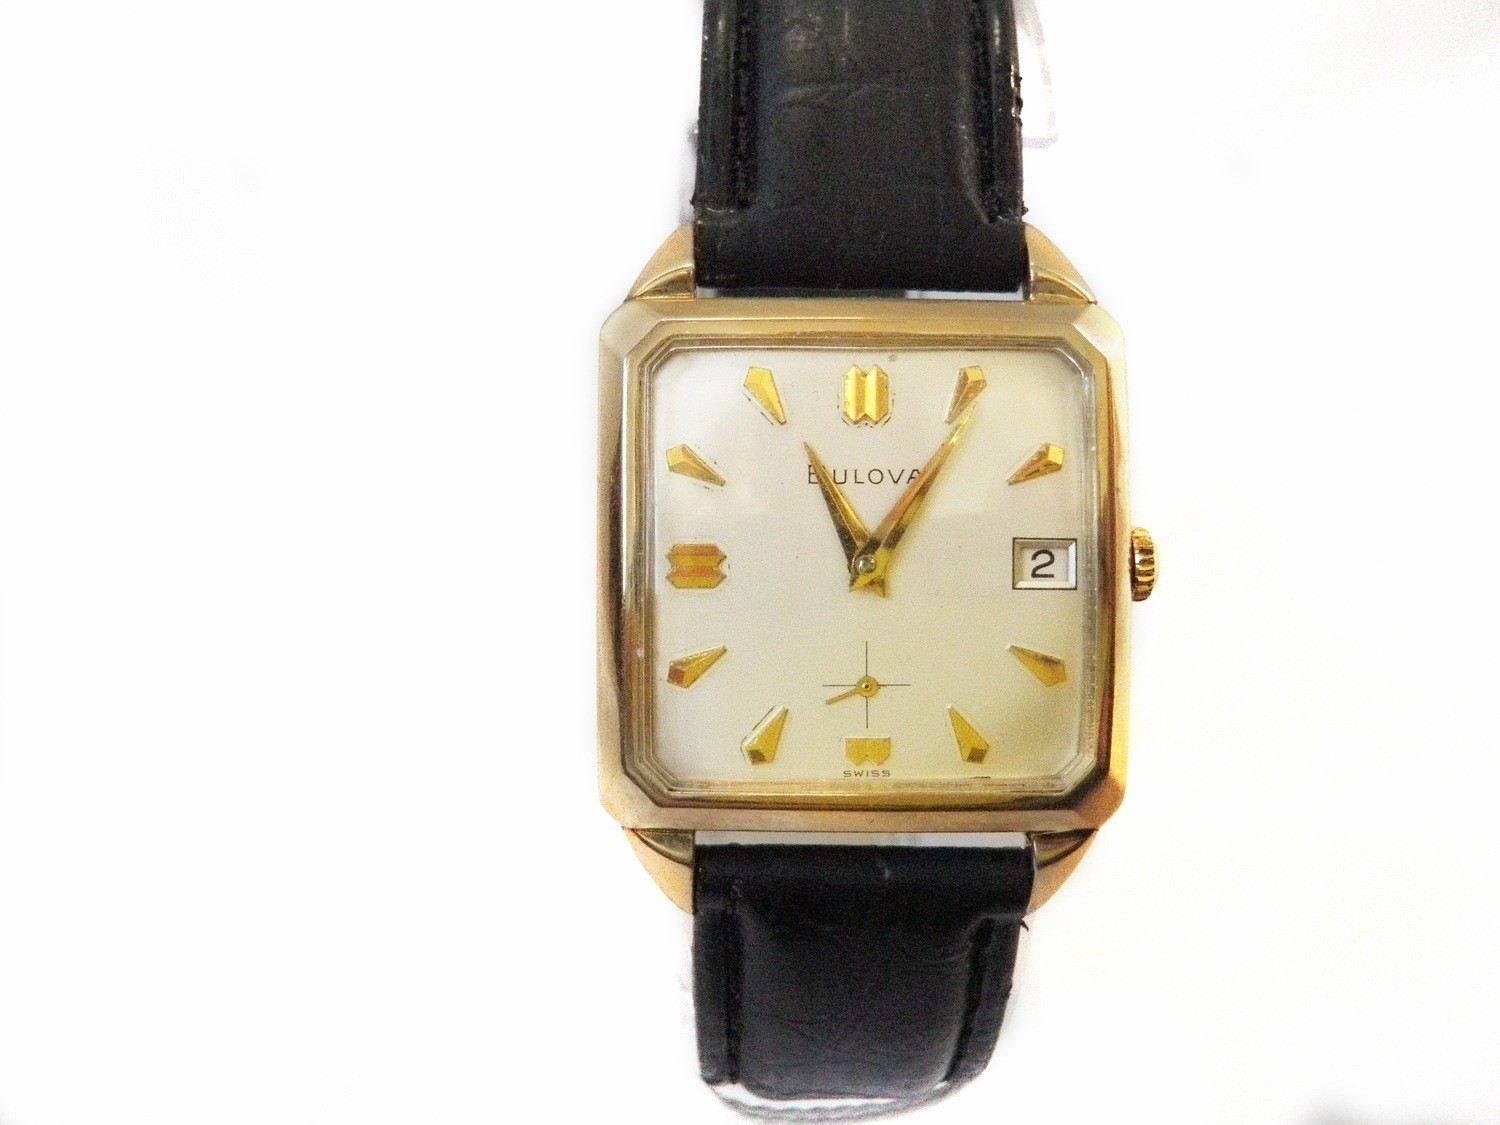 1964 Bulova Square Watch Faceted Corners Watch Sub-seconds 10k Gold Plate